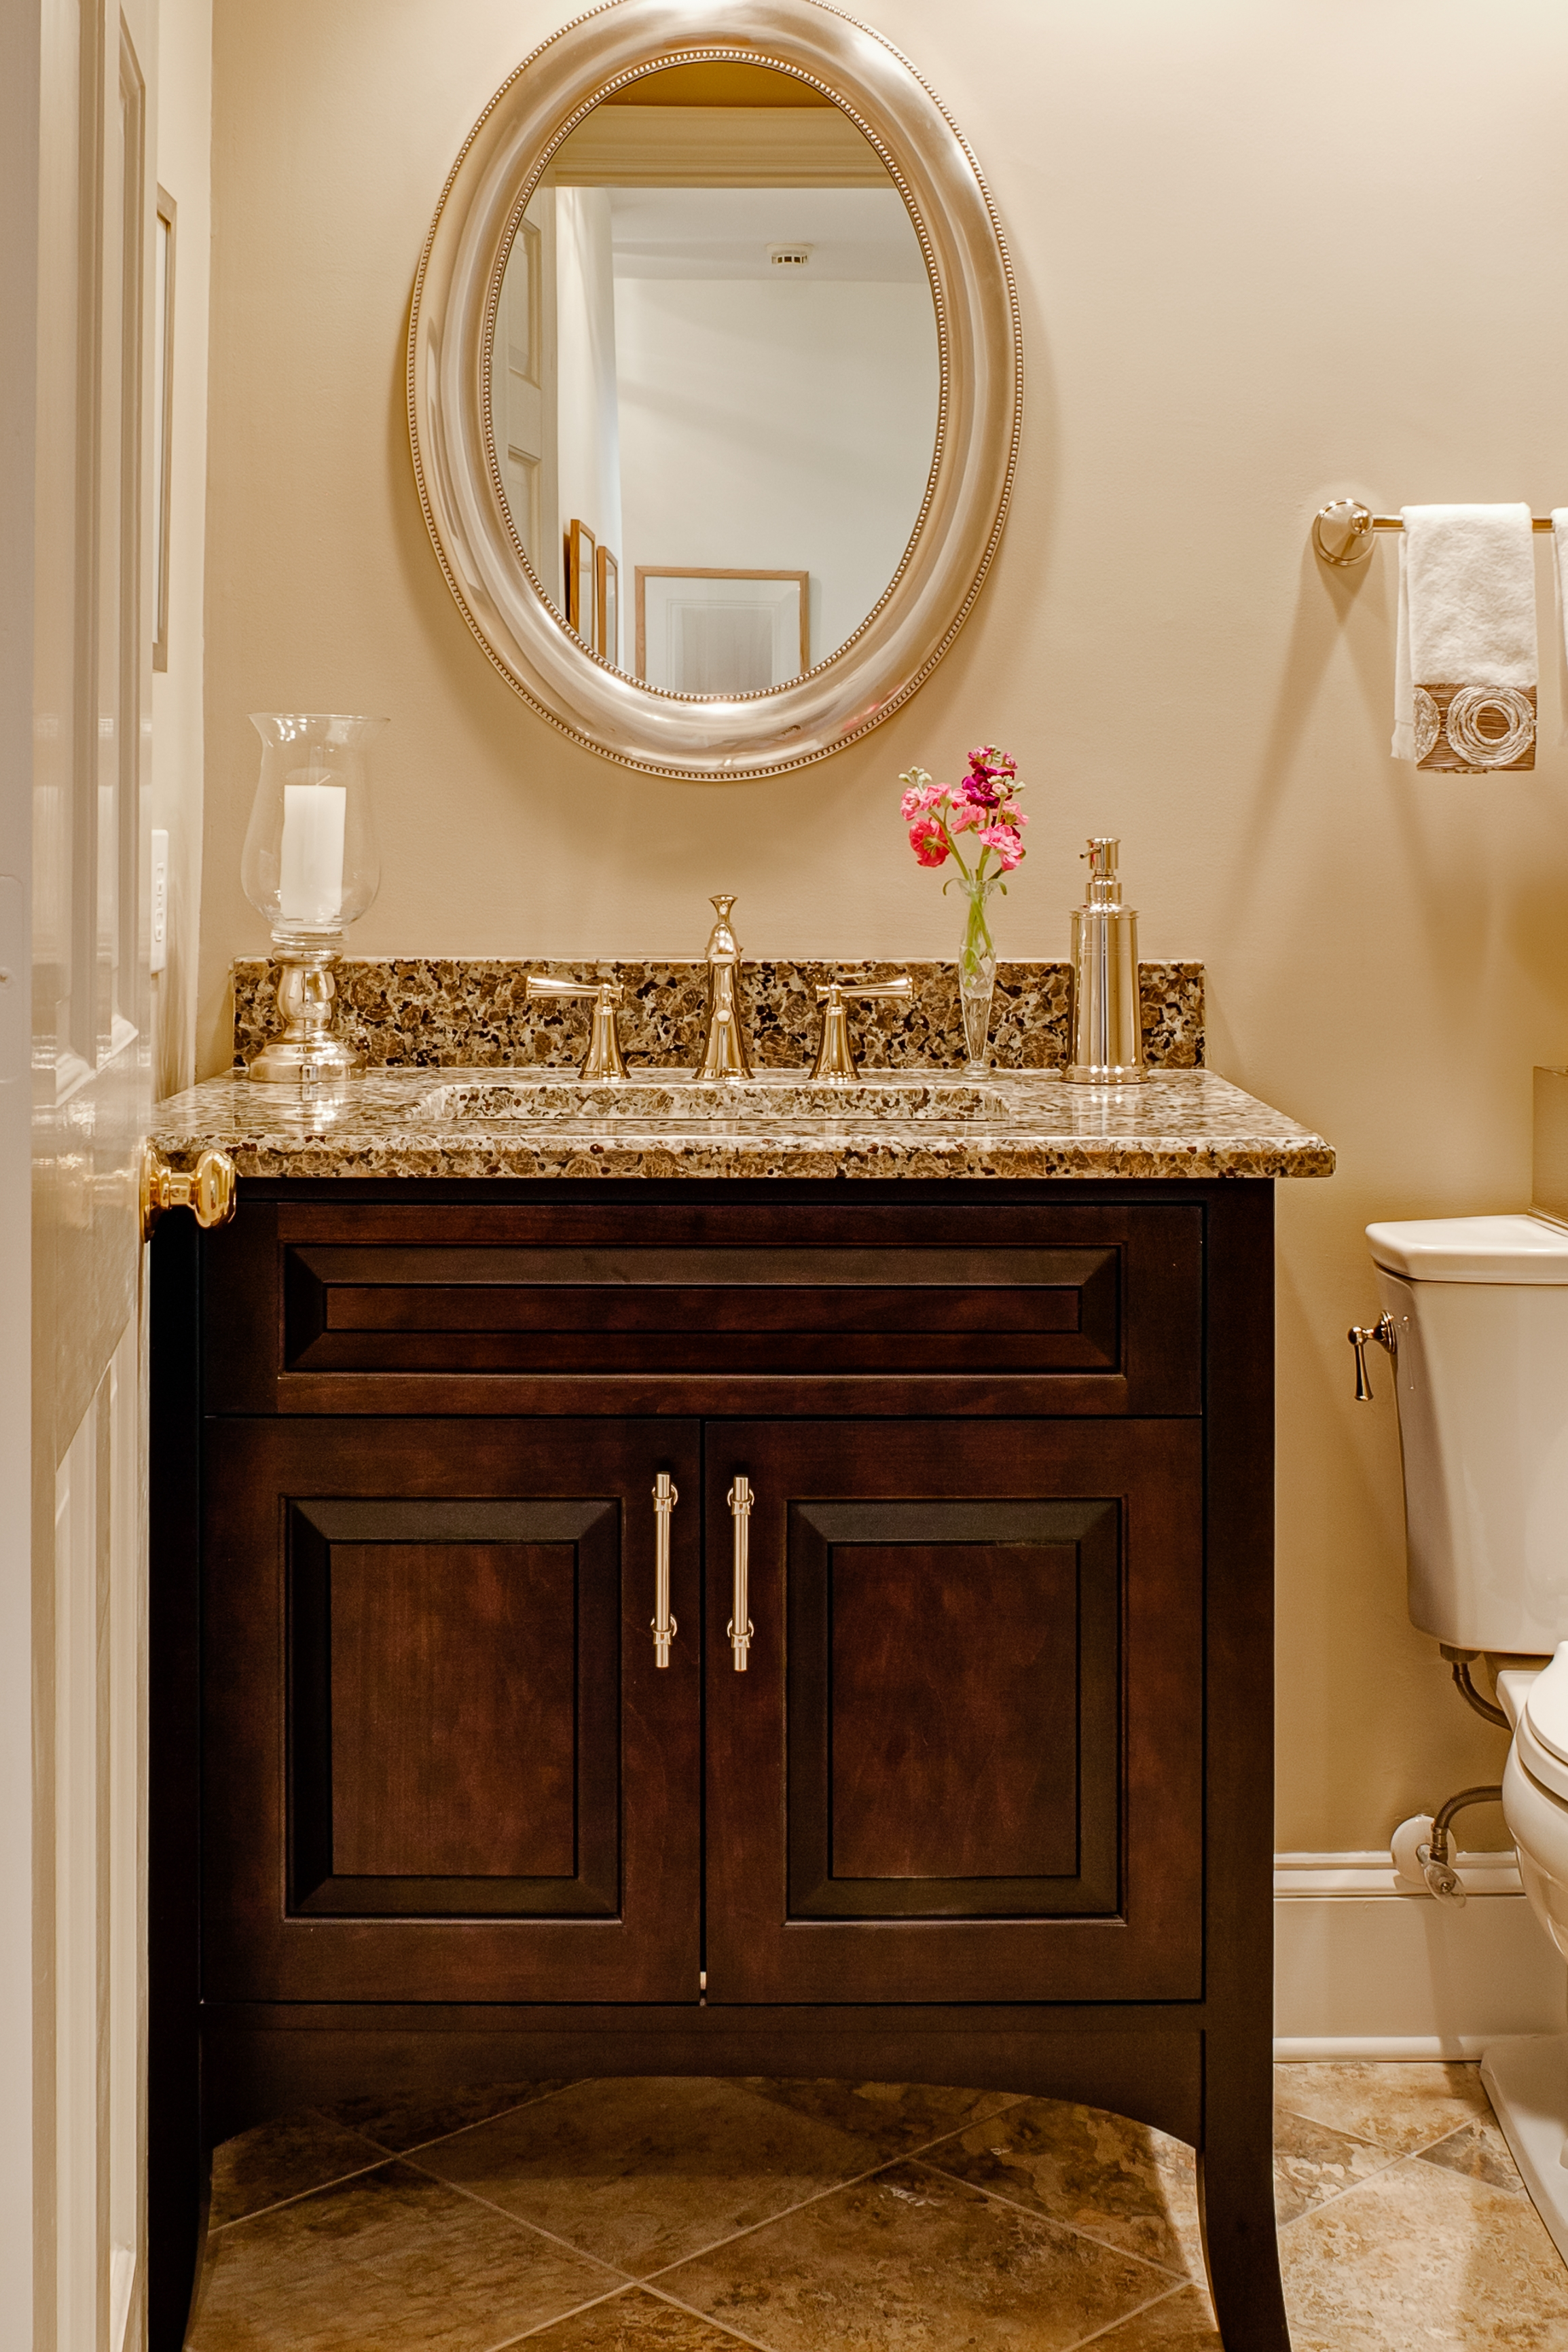 Ideas, fancy bathroom mirrors vanity powder room 48 for your with pertaining to dimensions 2309 x 3463  .